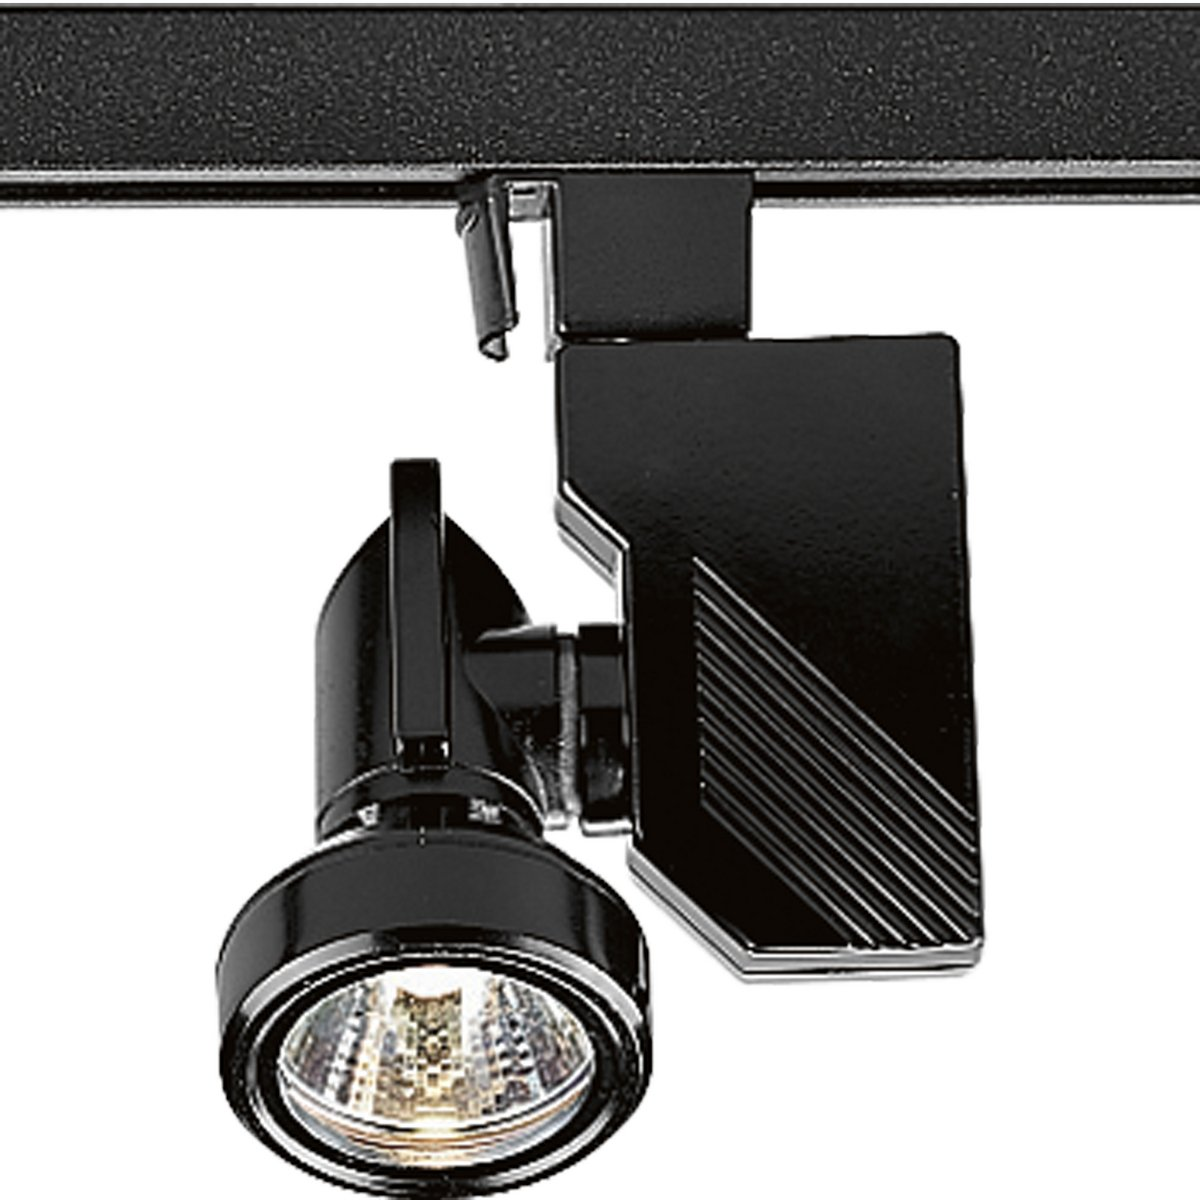 Progress Lighting P9218-31 Low Voltage Side Mounted High-Tech Complete with Transformer, Black